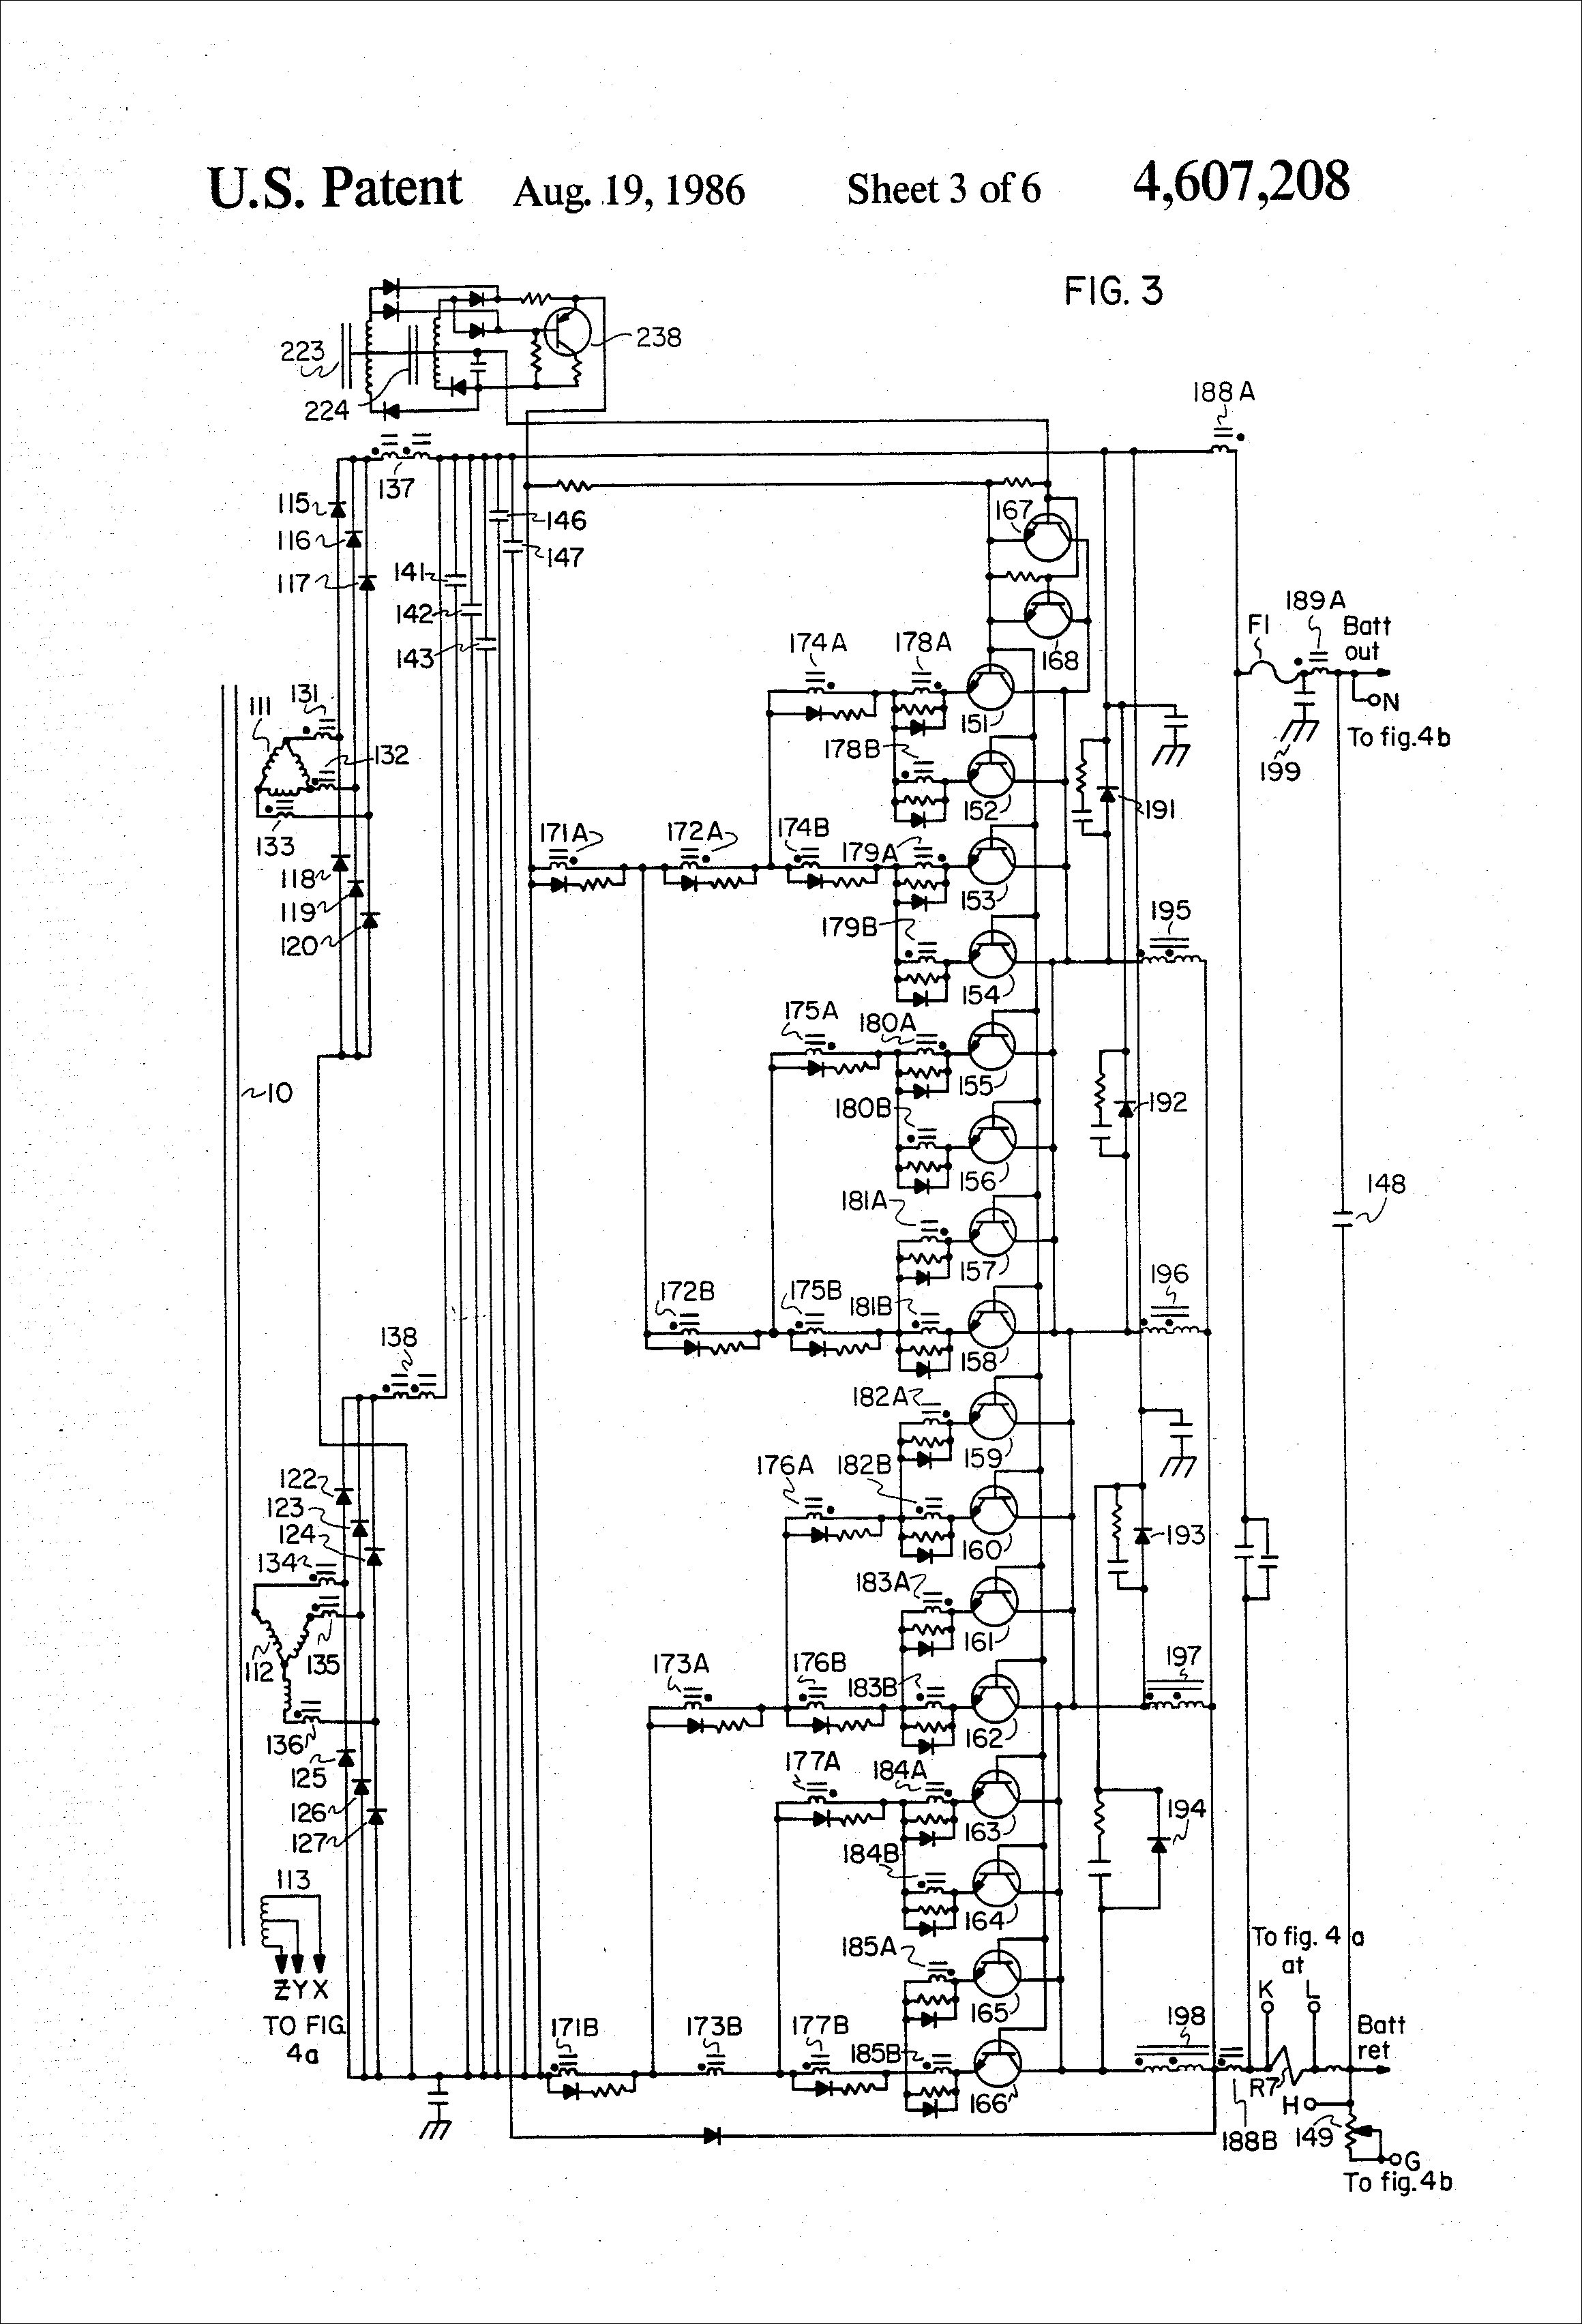 Schumacher Se 5212A Wiring Diagram | Wiring Library - Schumacher Battery Charger Se-5212A Wiring Diagram